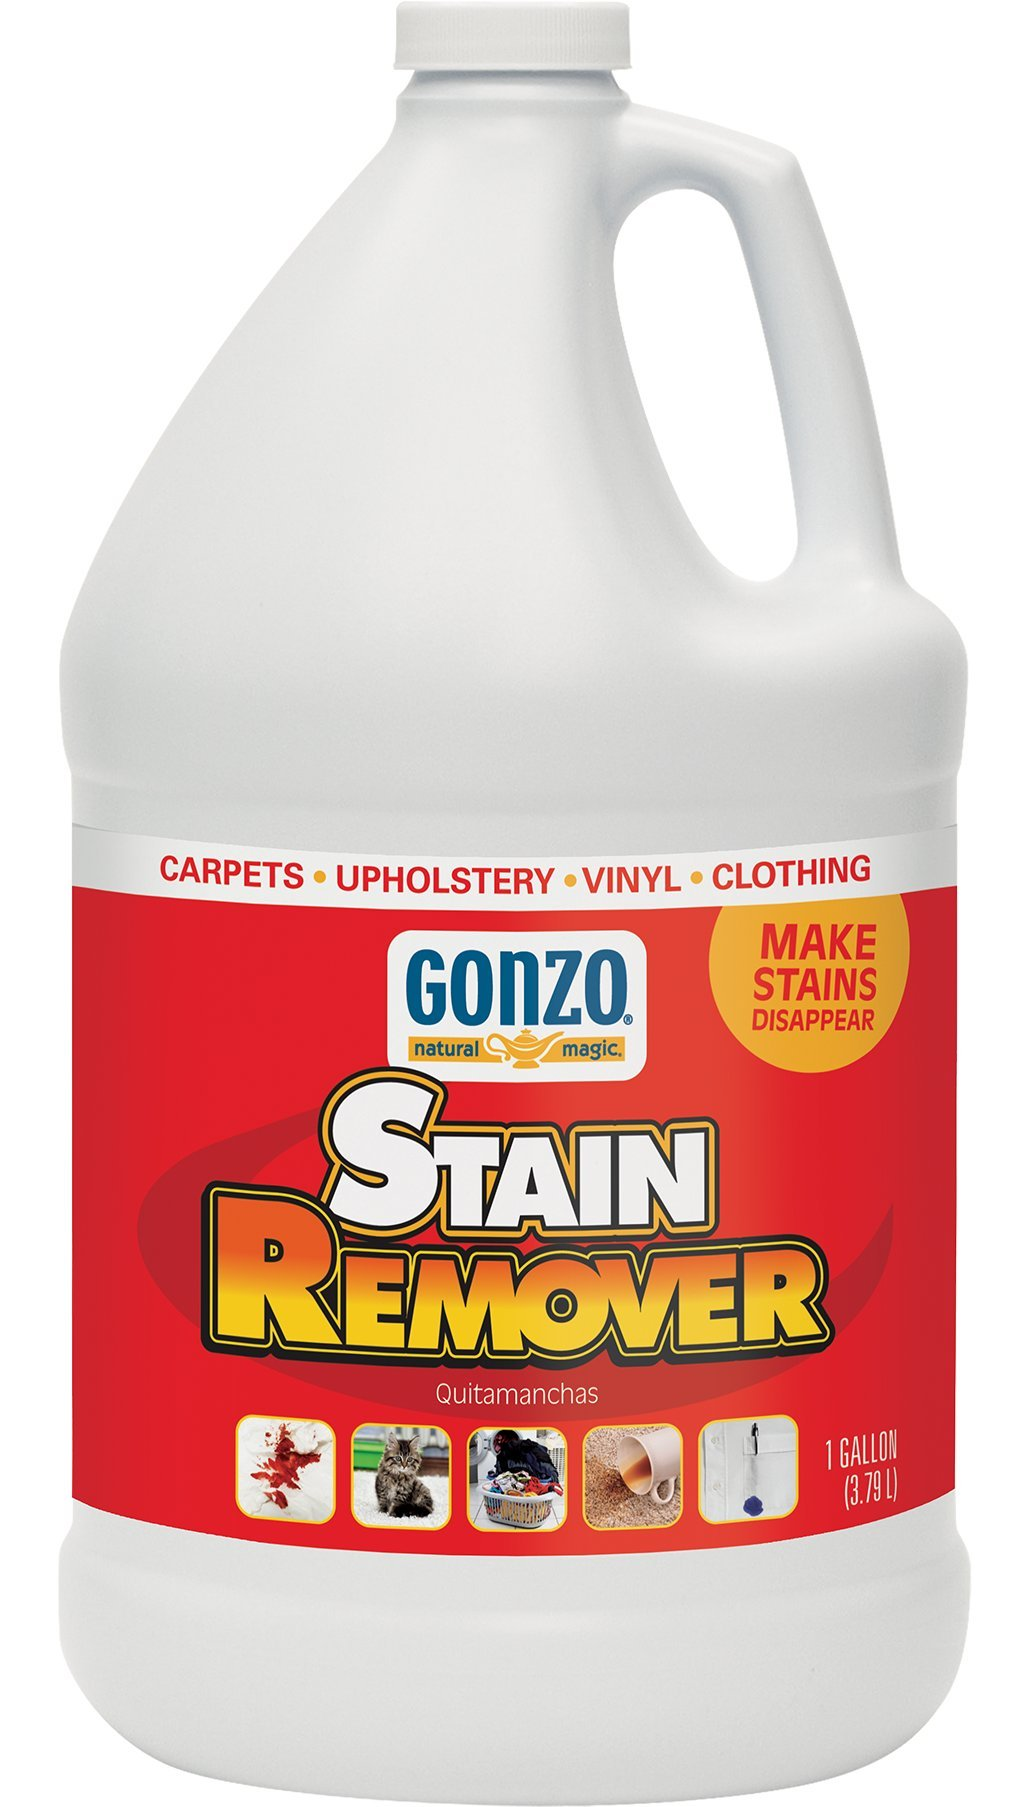 Gonzo Natural Magic Stain Remover - 1 Gallon - Super Strength Commercial Enzyme Cleaner For Pet Stains Removes Pet Urine Non-Toxic Carpet Stain Remover & Laundry Pretreat For Stains